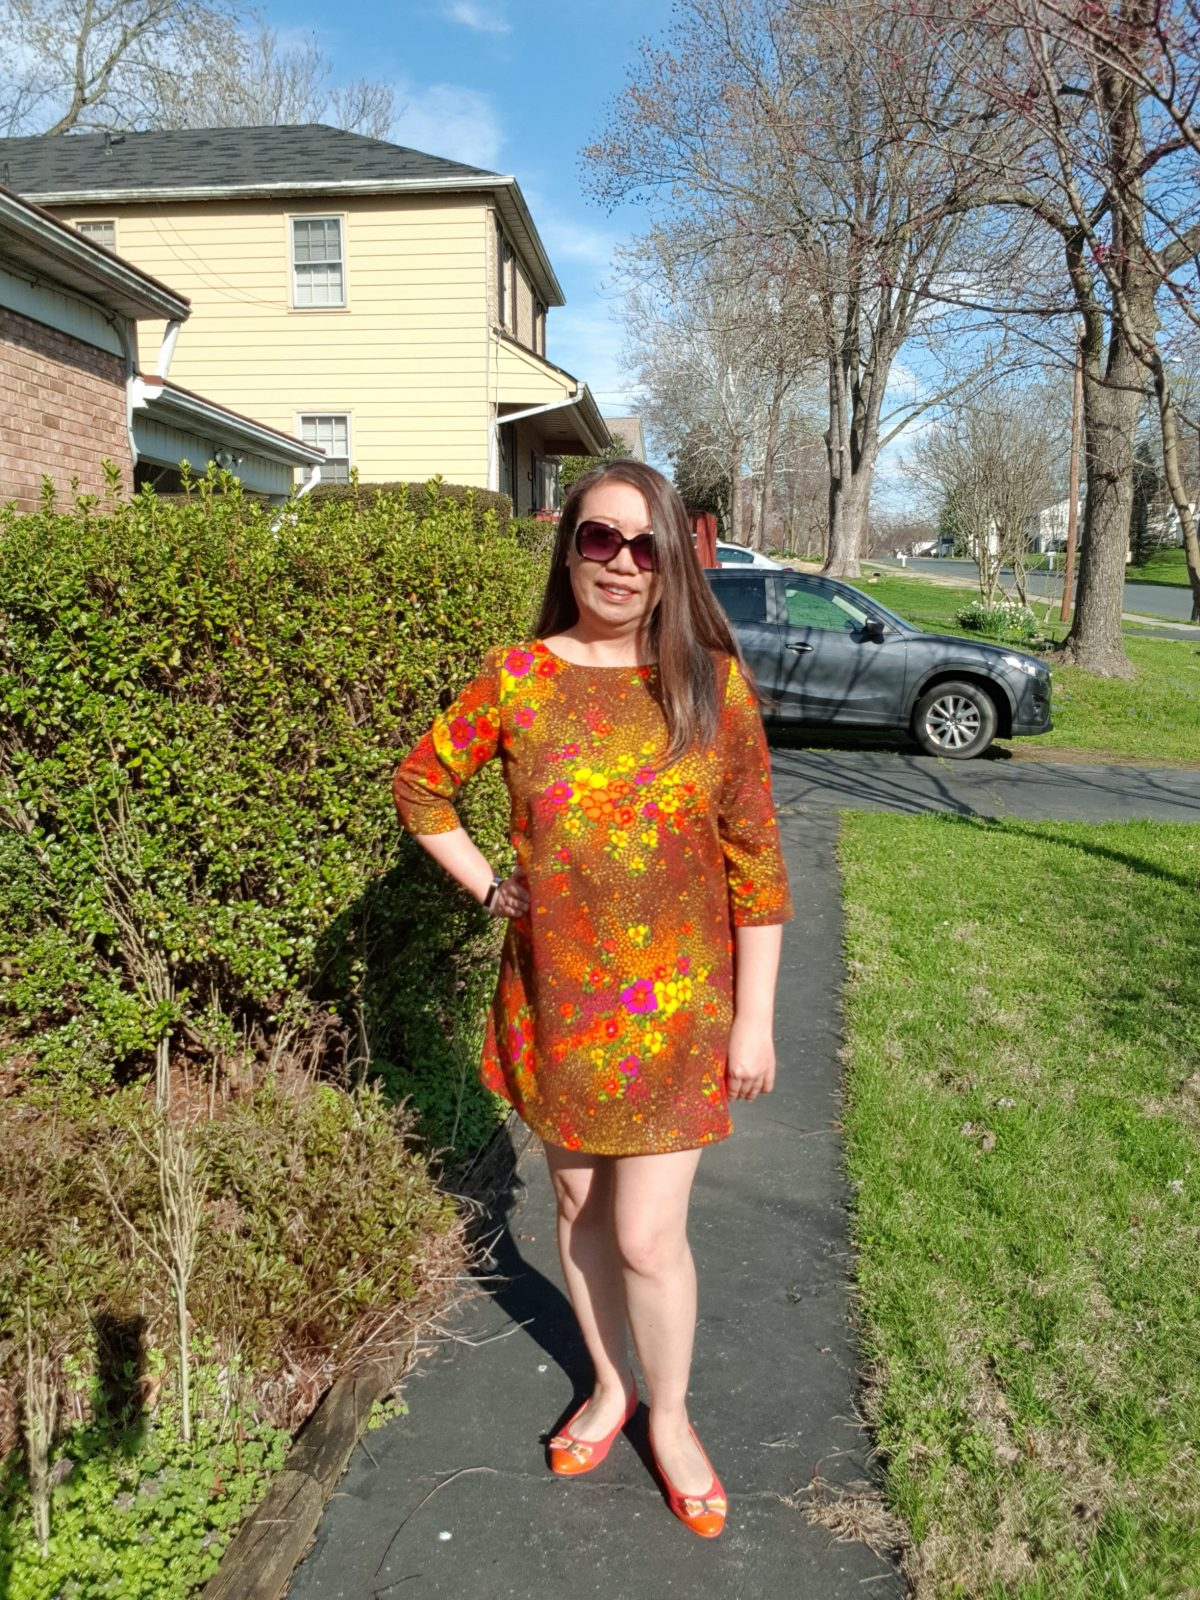 Margy is standing on a sidewalk in a neighborhood. She is wearing a red, orange, and yellow shift-style dress that has three-quarter length sleeves. She is also wearing sunglasses and orange flats that have bows on them.